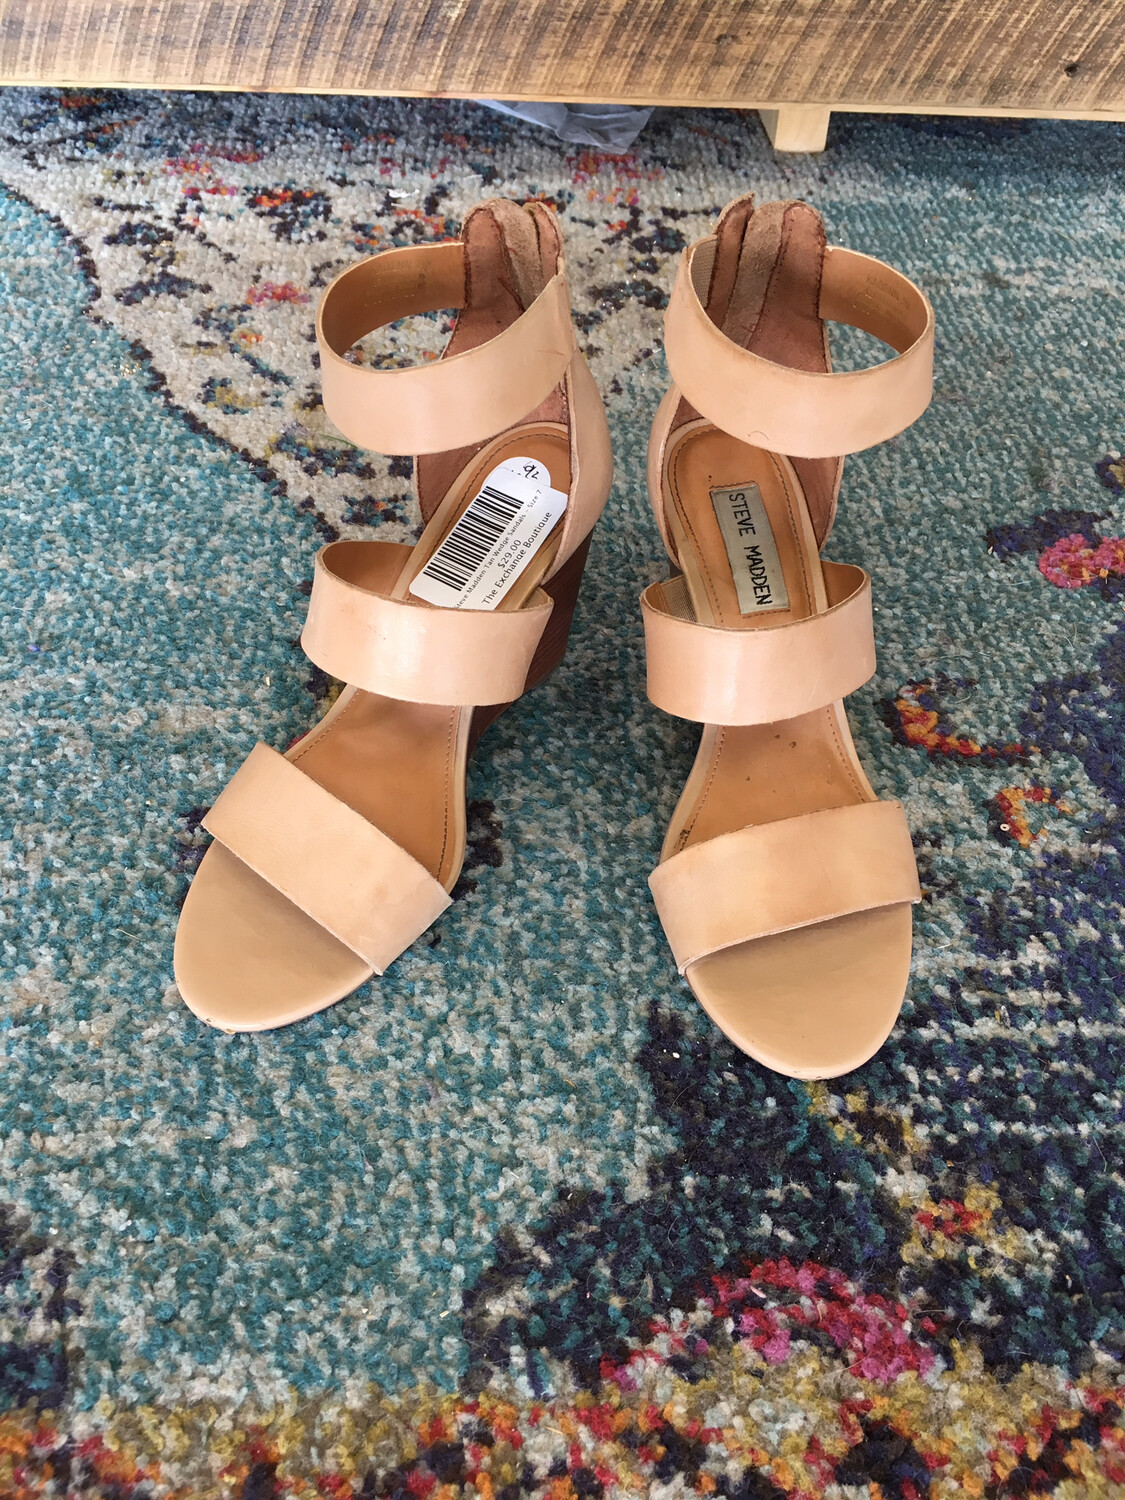 Steve Madden Tan Wedge Sandals - Size 7